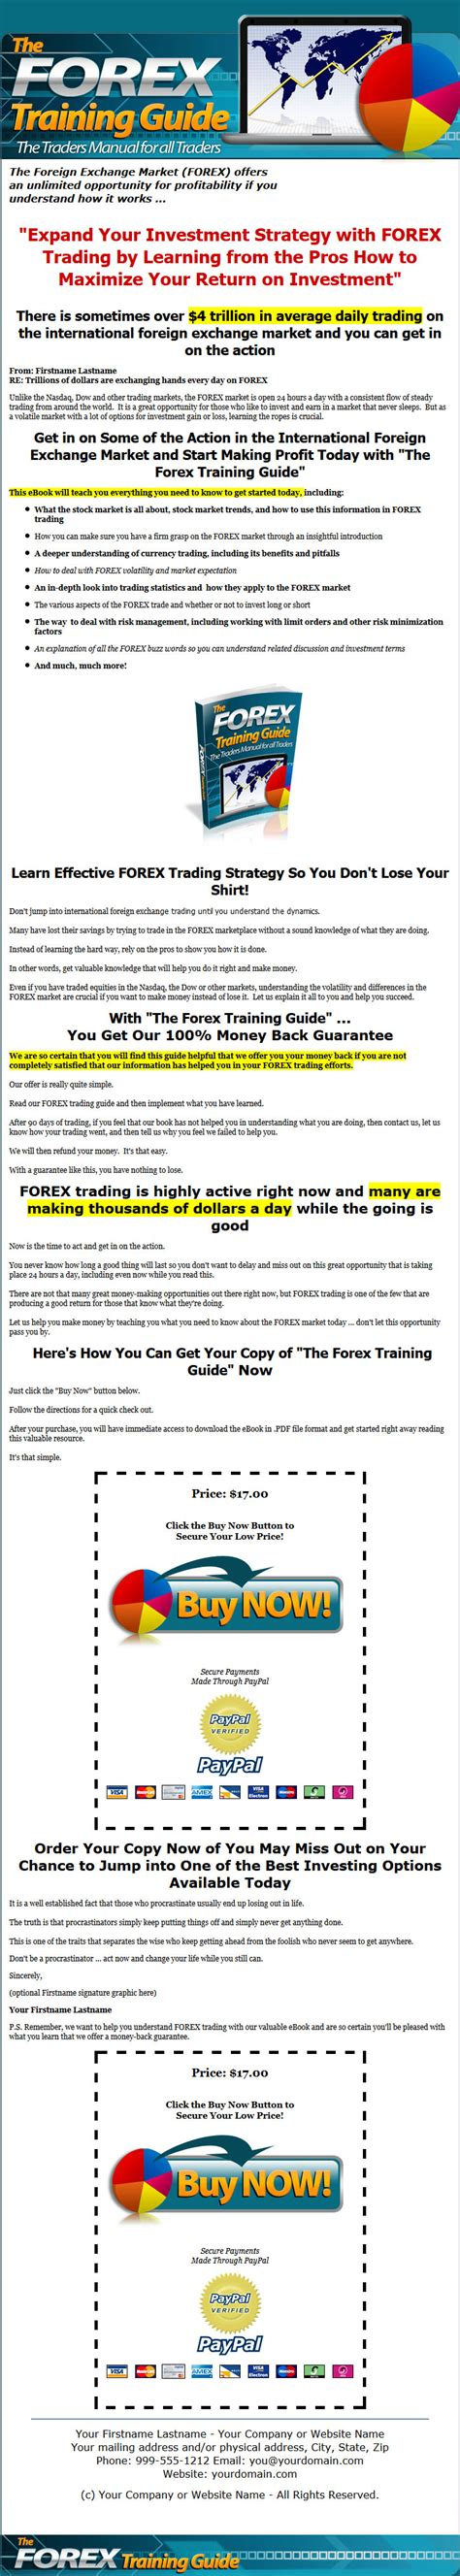 forex tutorial reddit forex training guide mrr ebook and minisite